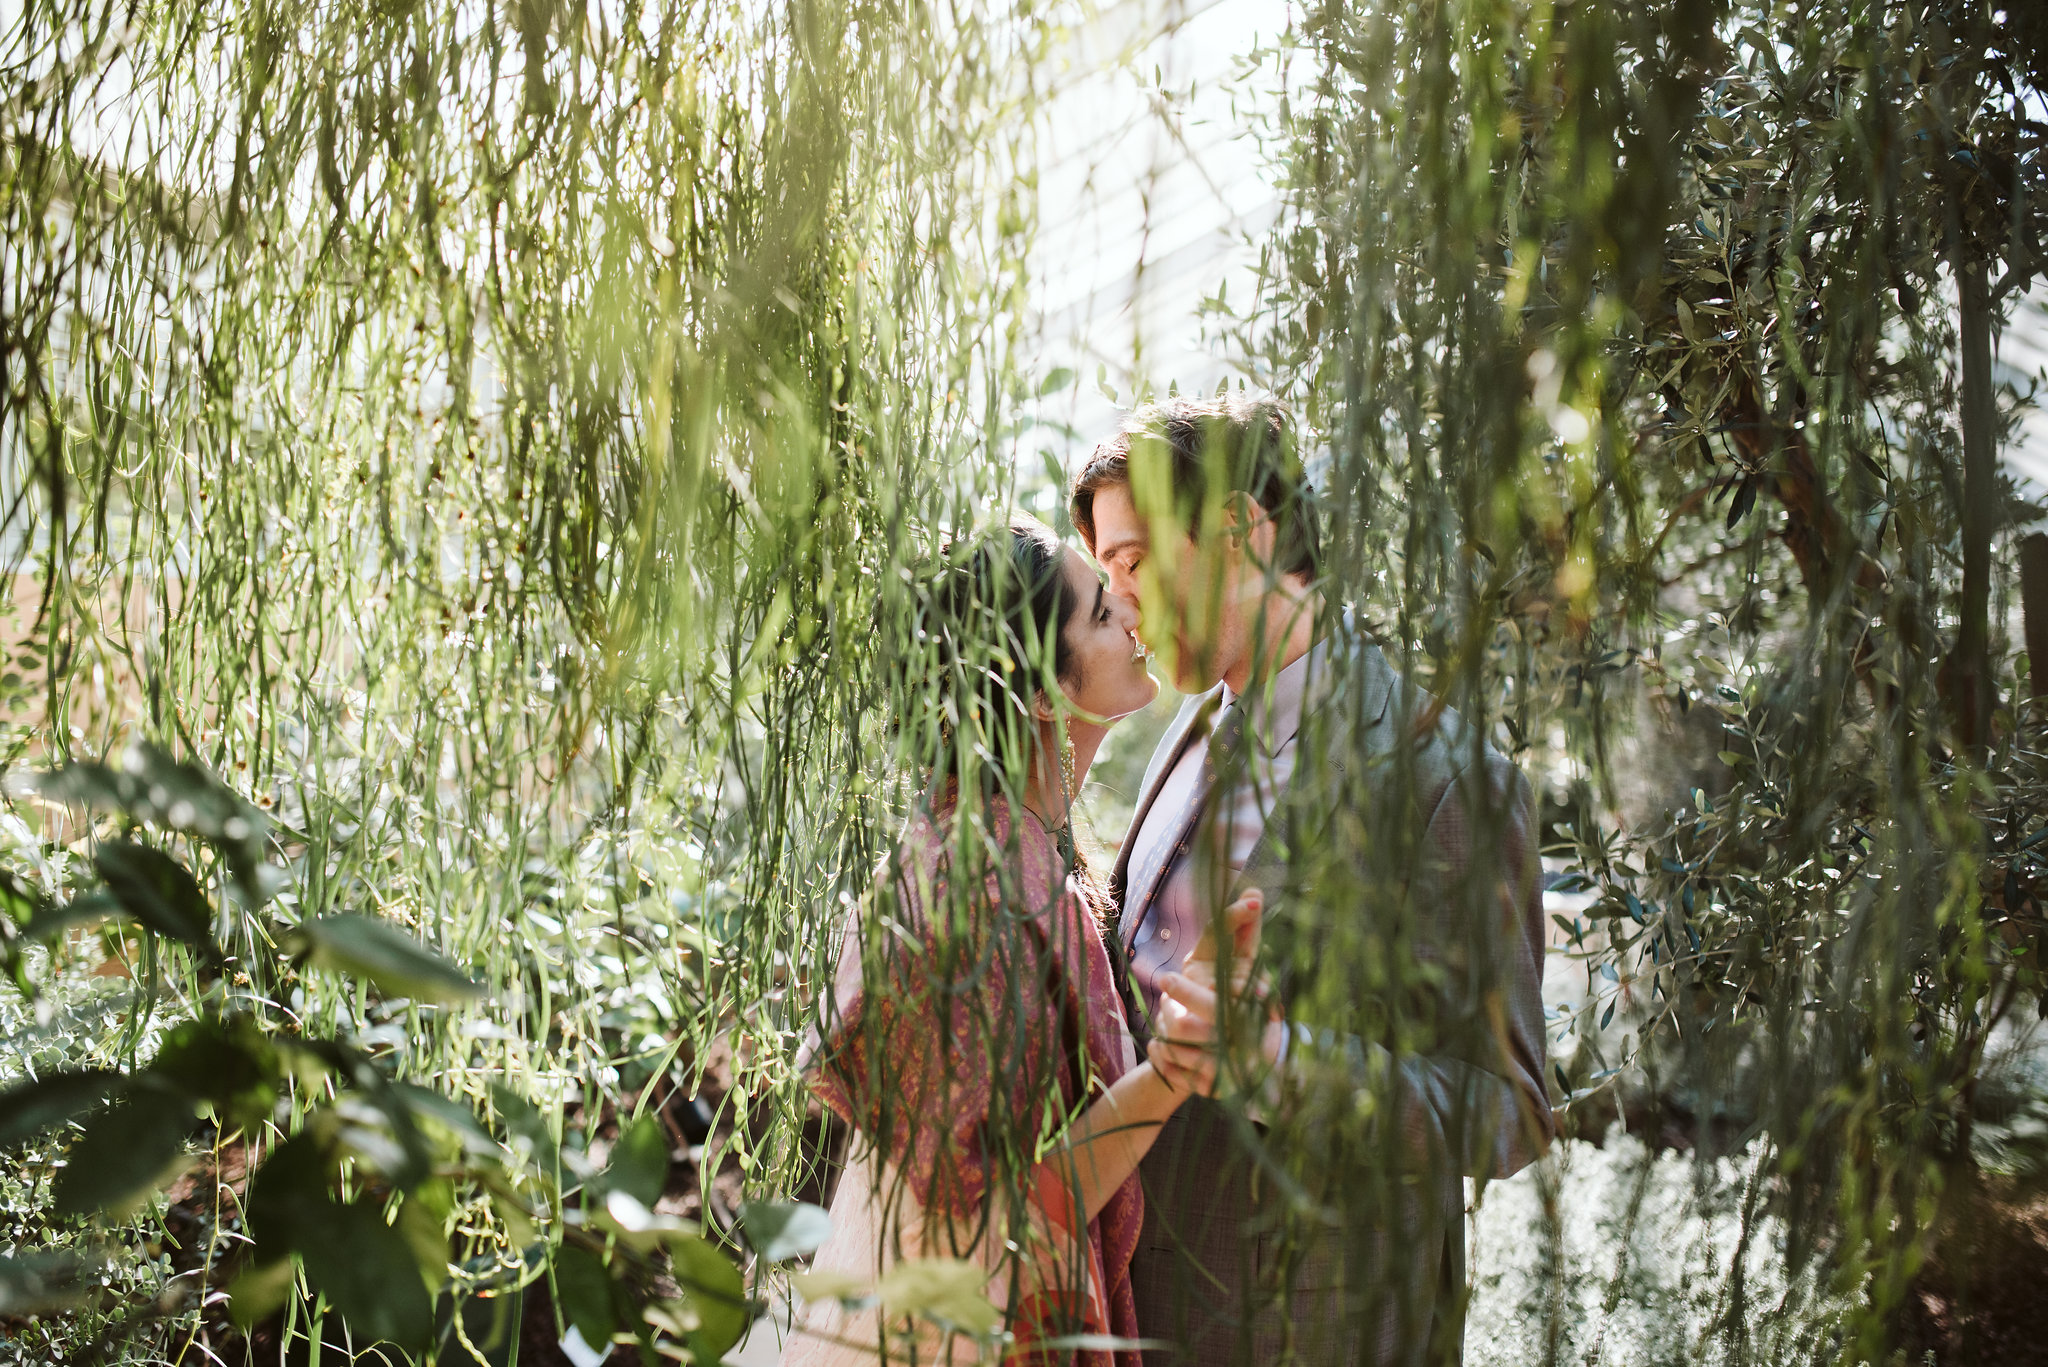 Elopement, Weekday Wedding, Rawlings Conservatory, Greenhouse, Baltimore Wedding Photographer, Outdoor, Nature, Romantic, Garden, Bride and Groom Kissing, Secluded Moments, Candid Photo